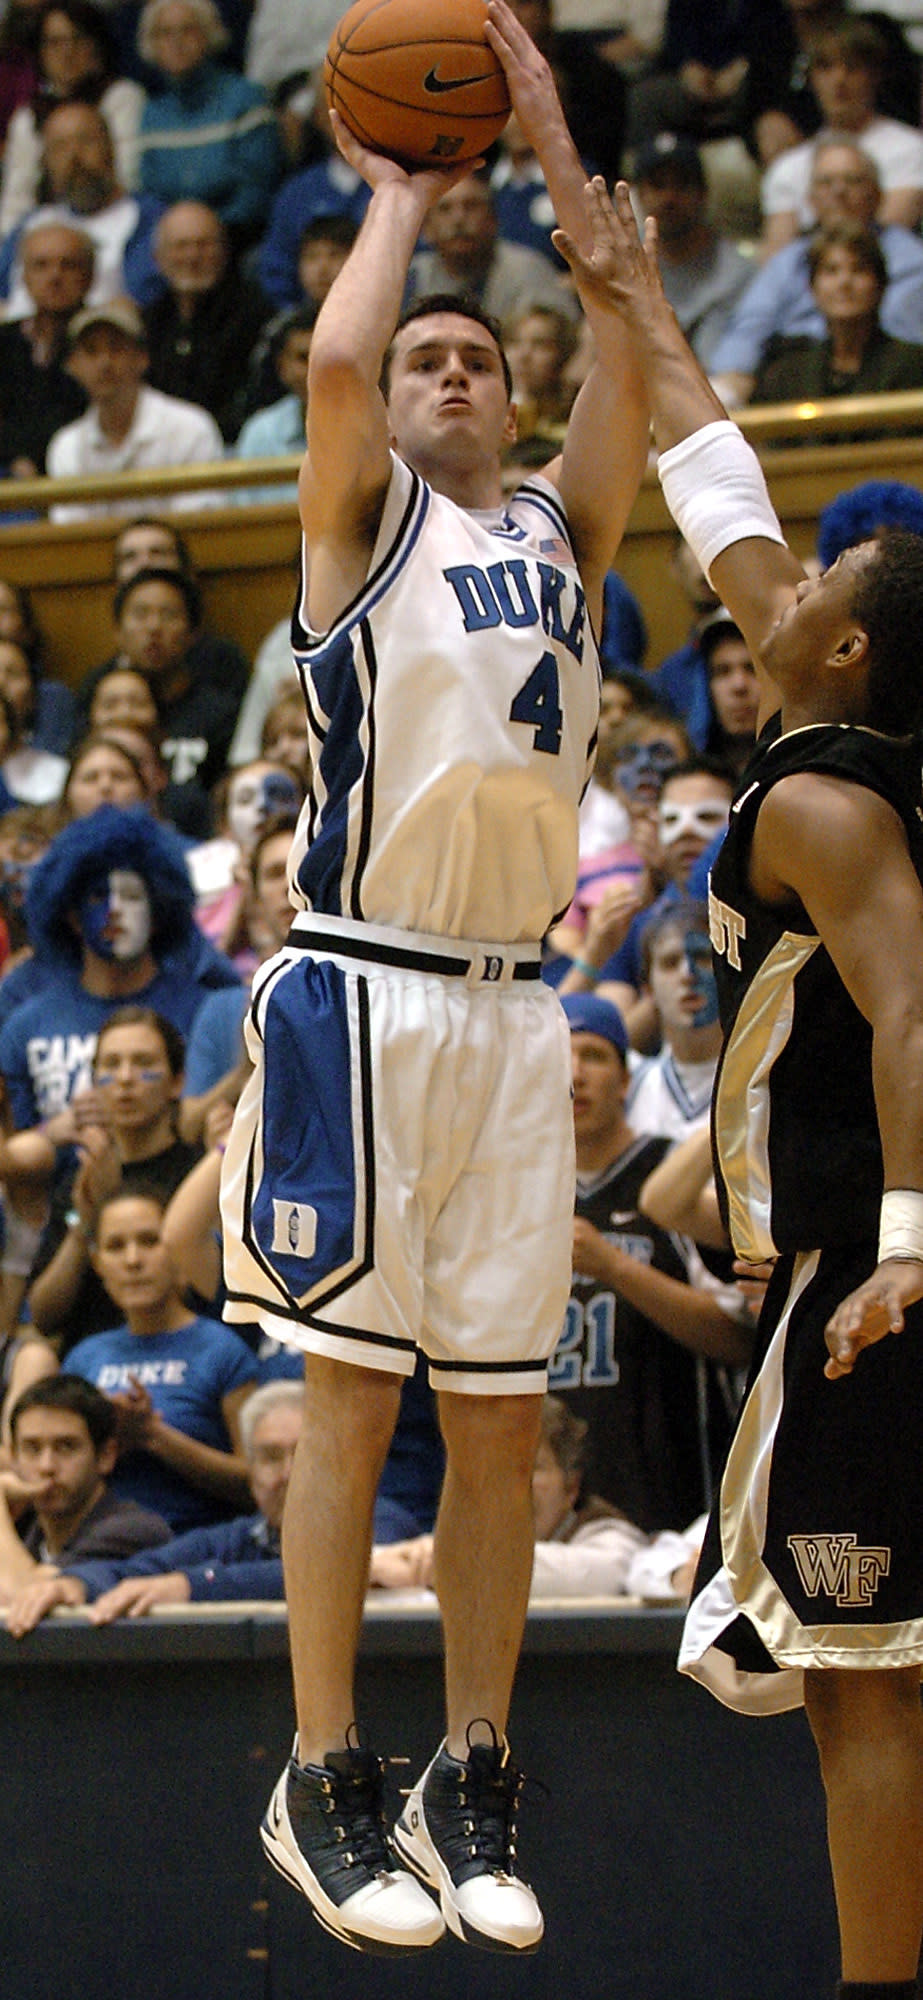 FILE - Duke's J.J. Redick (4) breaks the NCAA record for career high three-pointers made with 414 as he shoots over Wake Forest's Justin Gray, right, in the first half of a college basketball game in Durham, N.C., in this Tuesday, Feb. 14, 2006, file photo. Redick announced his retirement from basketball Tuesday, Sept. 21, 2021, ending a 15-season NBA career that came after he was the AP's college player of the year at Duke in 2006. (AP Photo/Sara D. Davis, File)